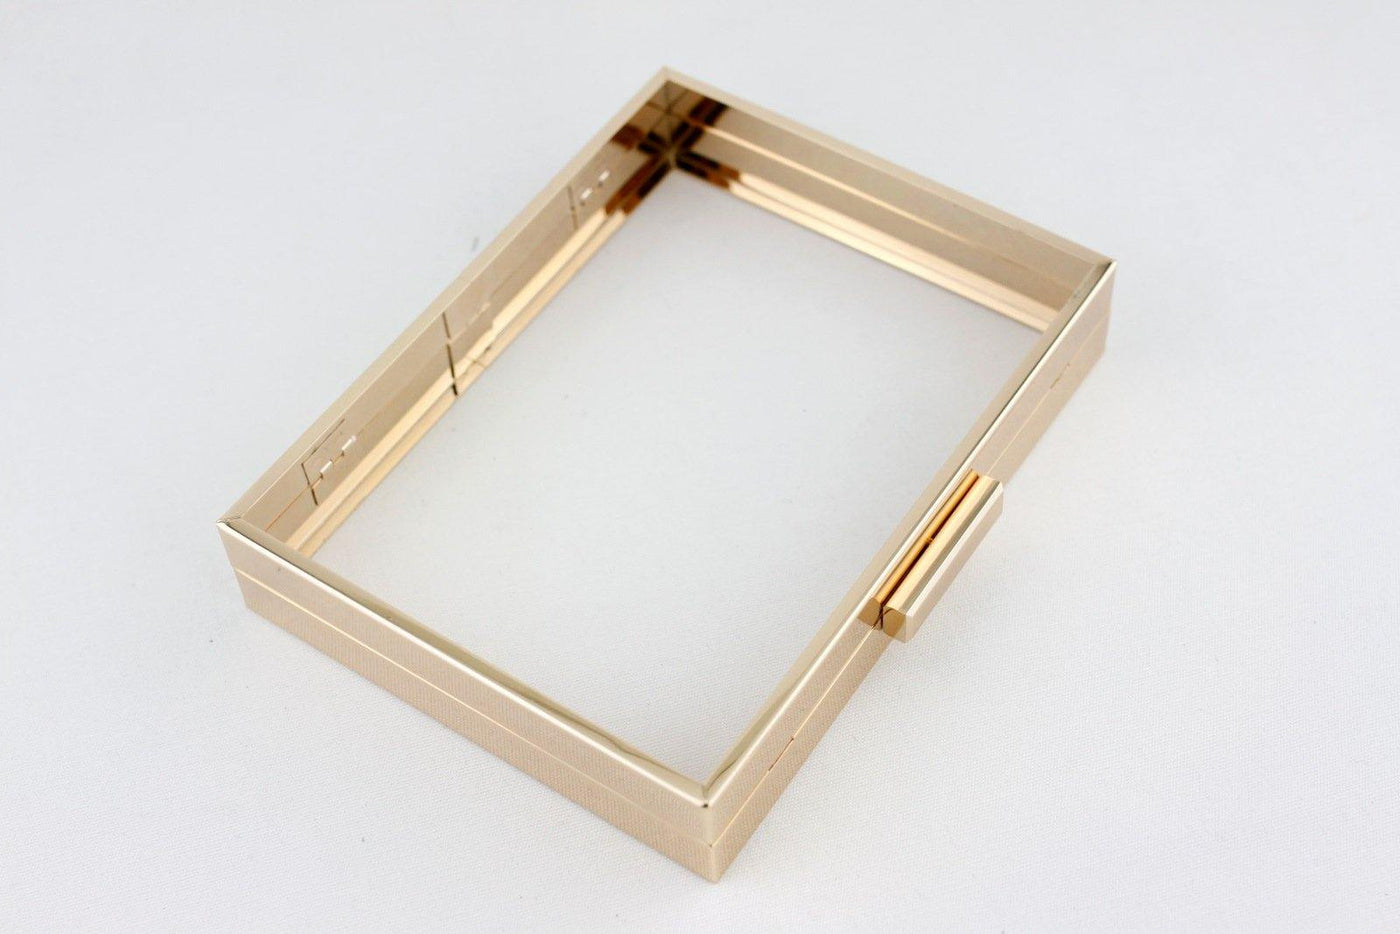 8 X 6 Inch   Gold Hollow Clutch Frame With Chain Loops | SUPPLY4BAG ...